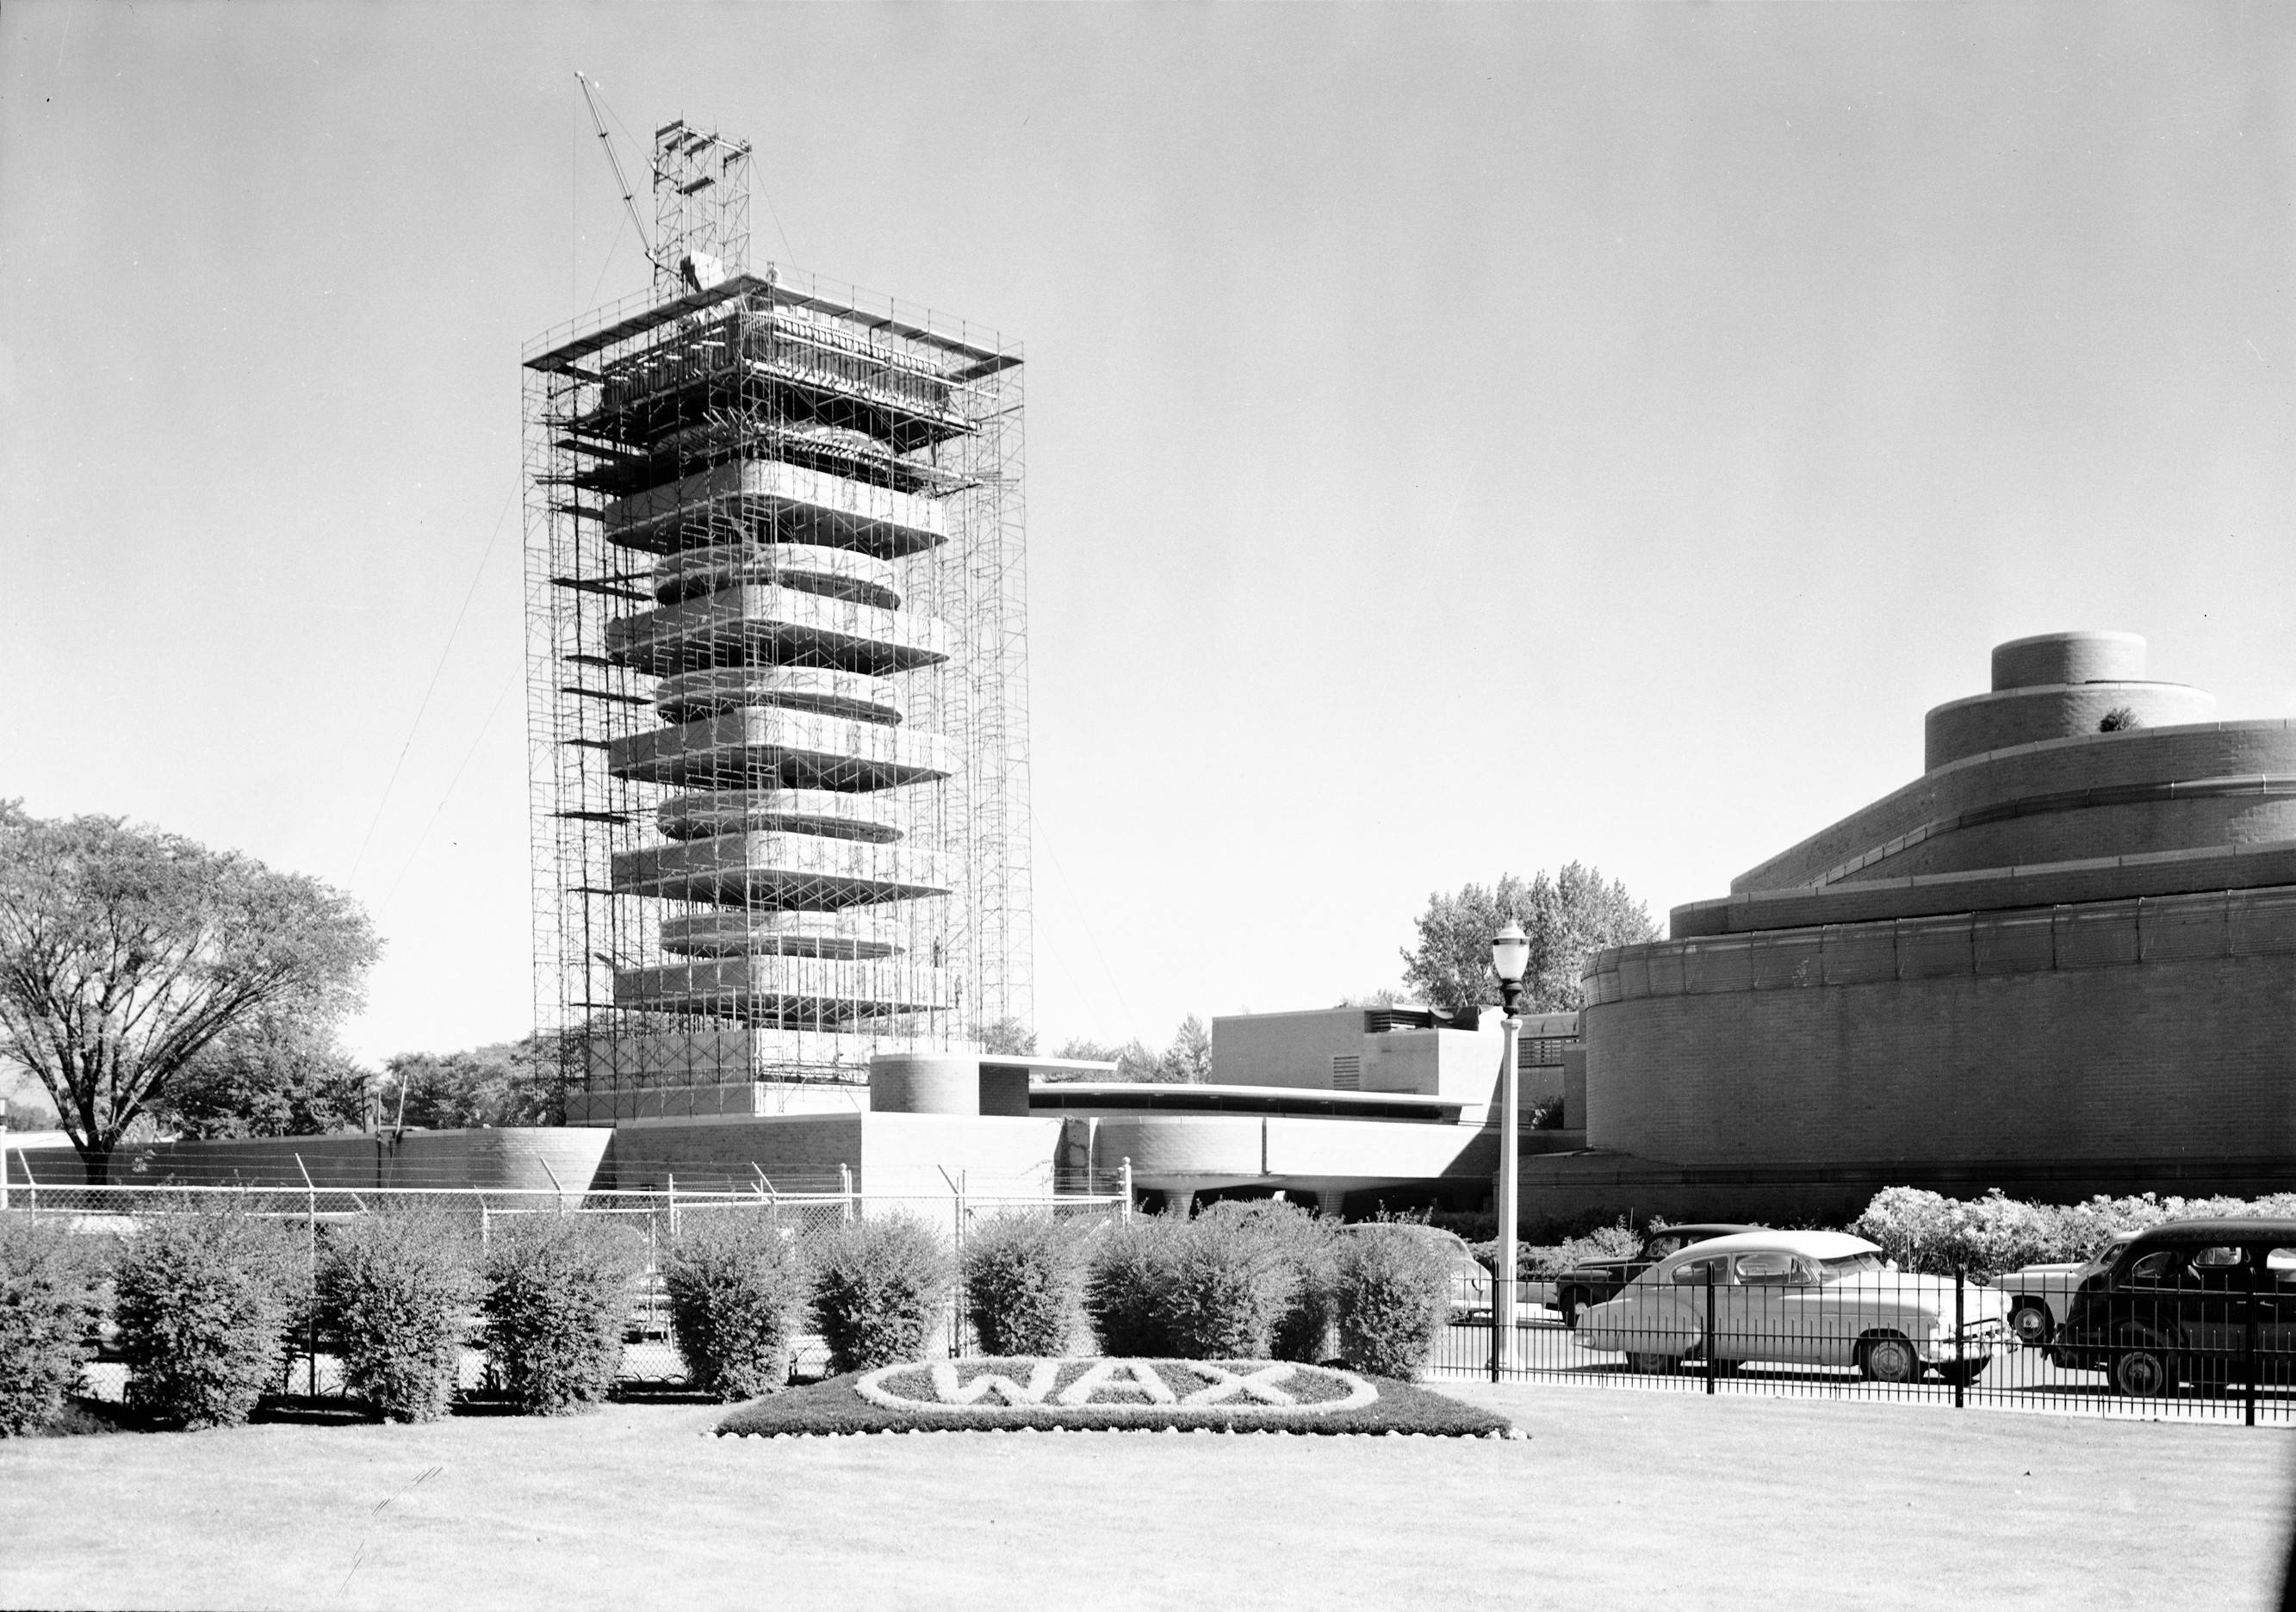 This undated photo shows construction of the Research Tower designed by Frank Lloyd Wright for home products giant SC Johnson in Racine, Wisconsin.